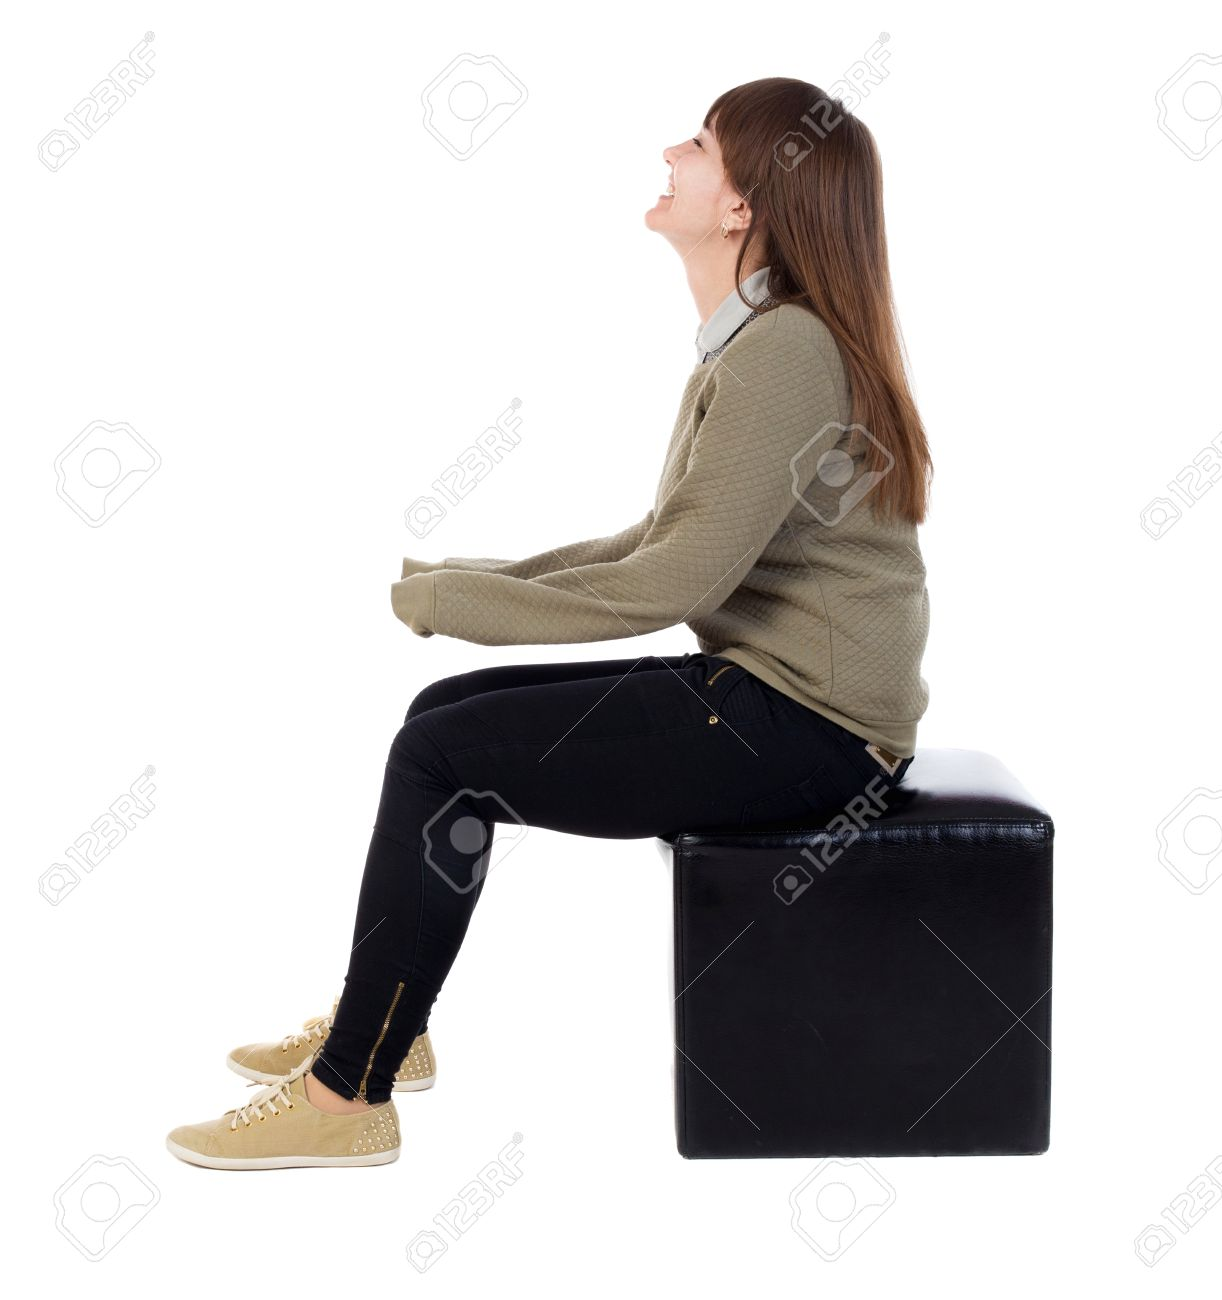 back view of young beautiful woman sitting. girl watching. Rear view people collection. backside view of person. Isolated over white background. The girl is sitting on a leather ottoman and smiling. - 51617278